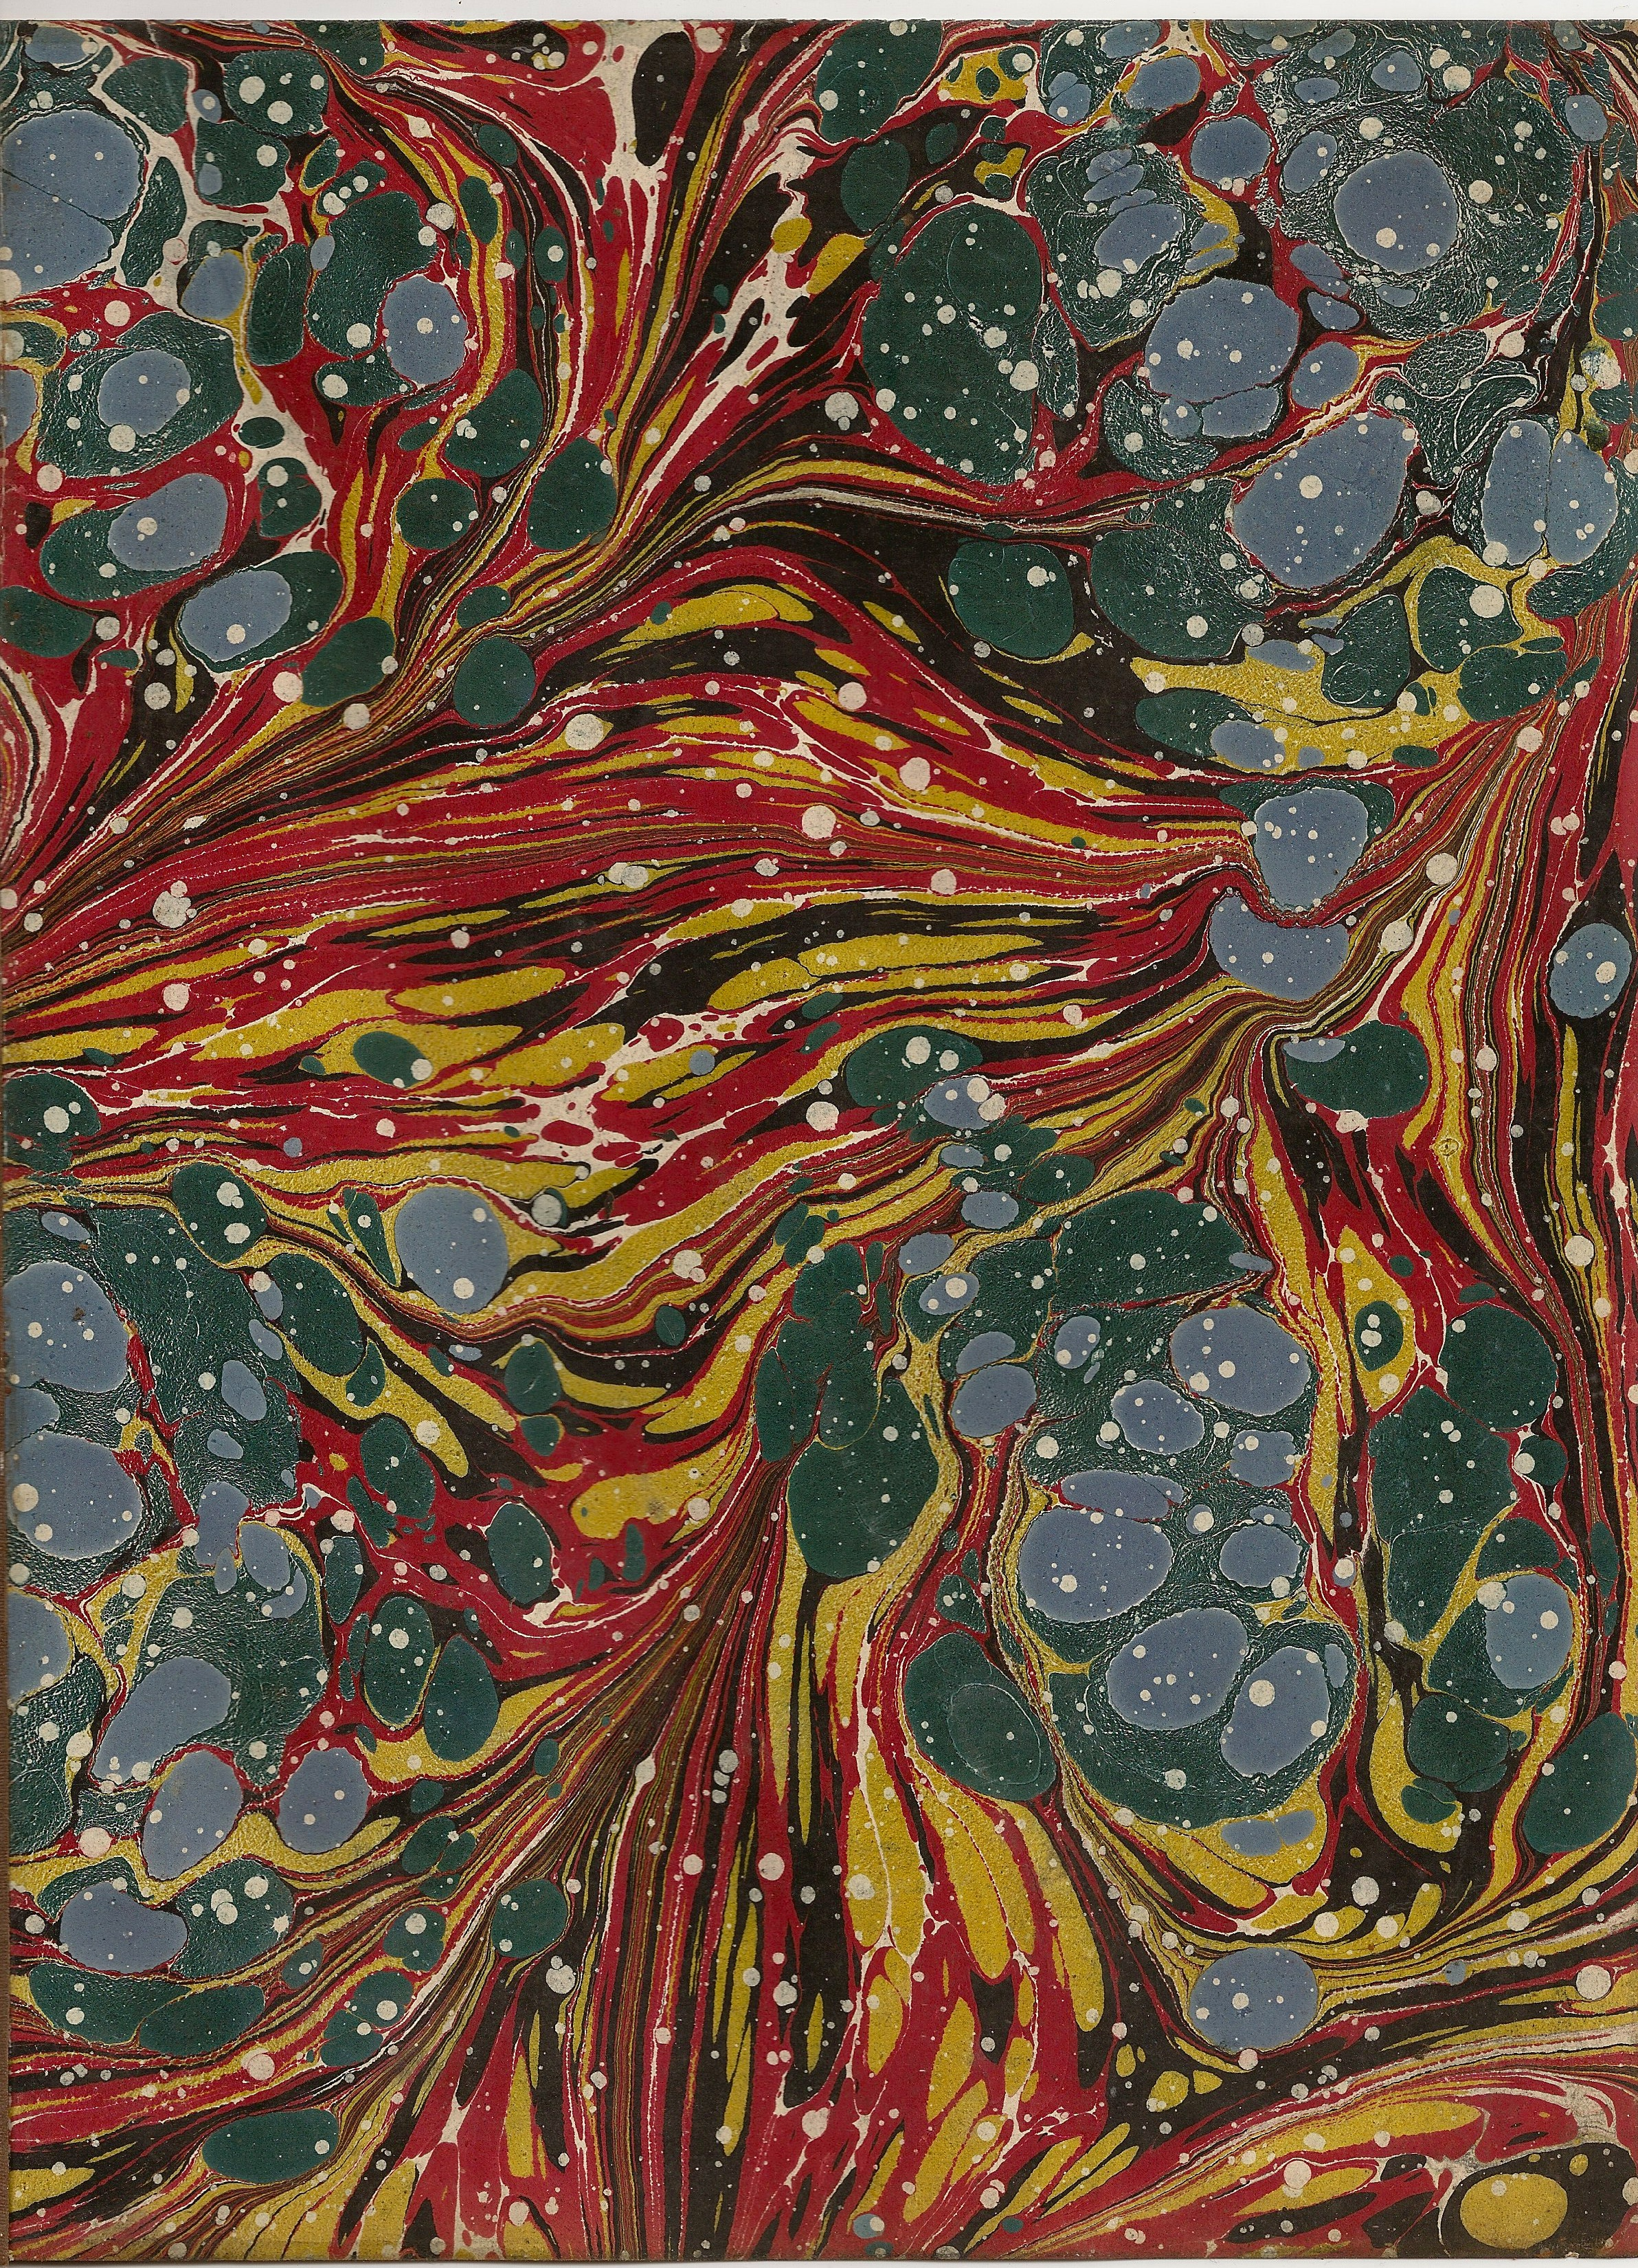 splashes of color marbled in paper such as that used in fine press books.